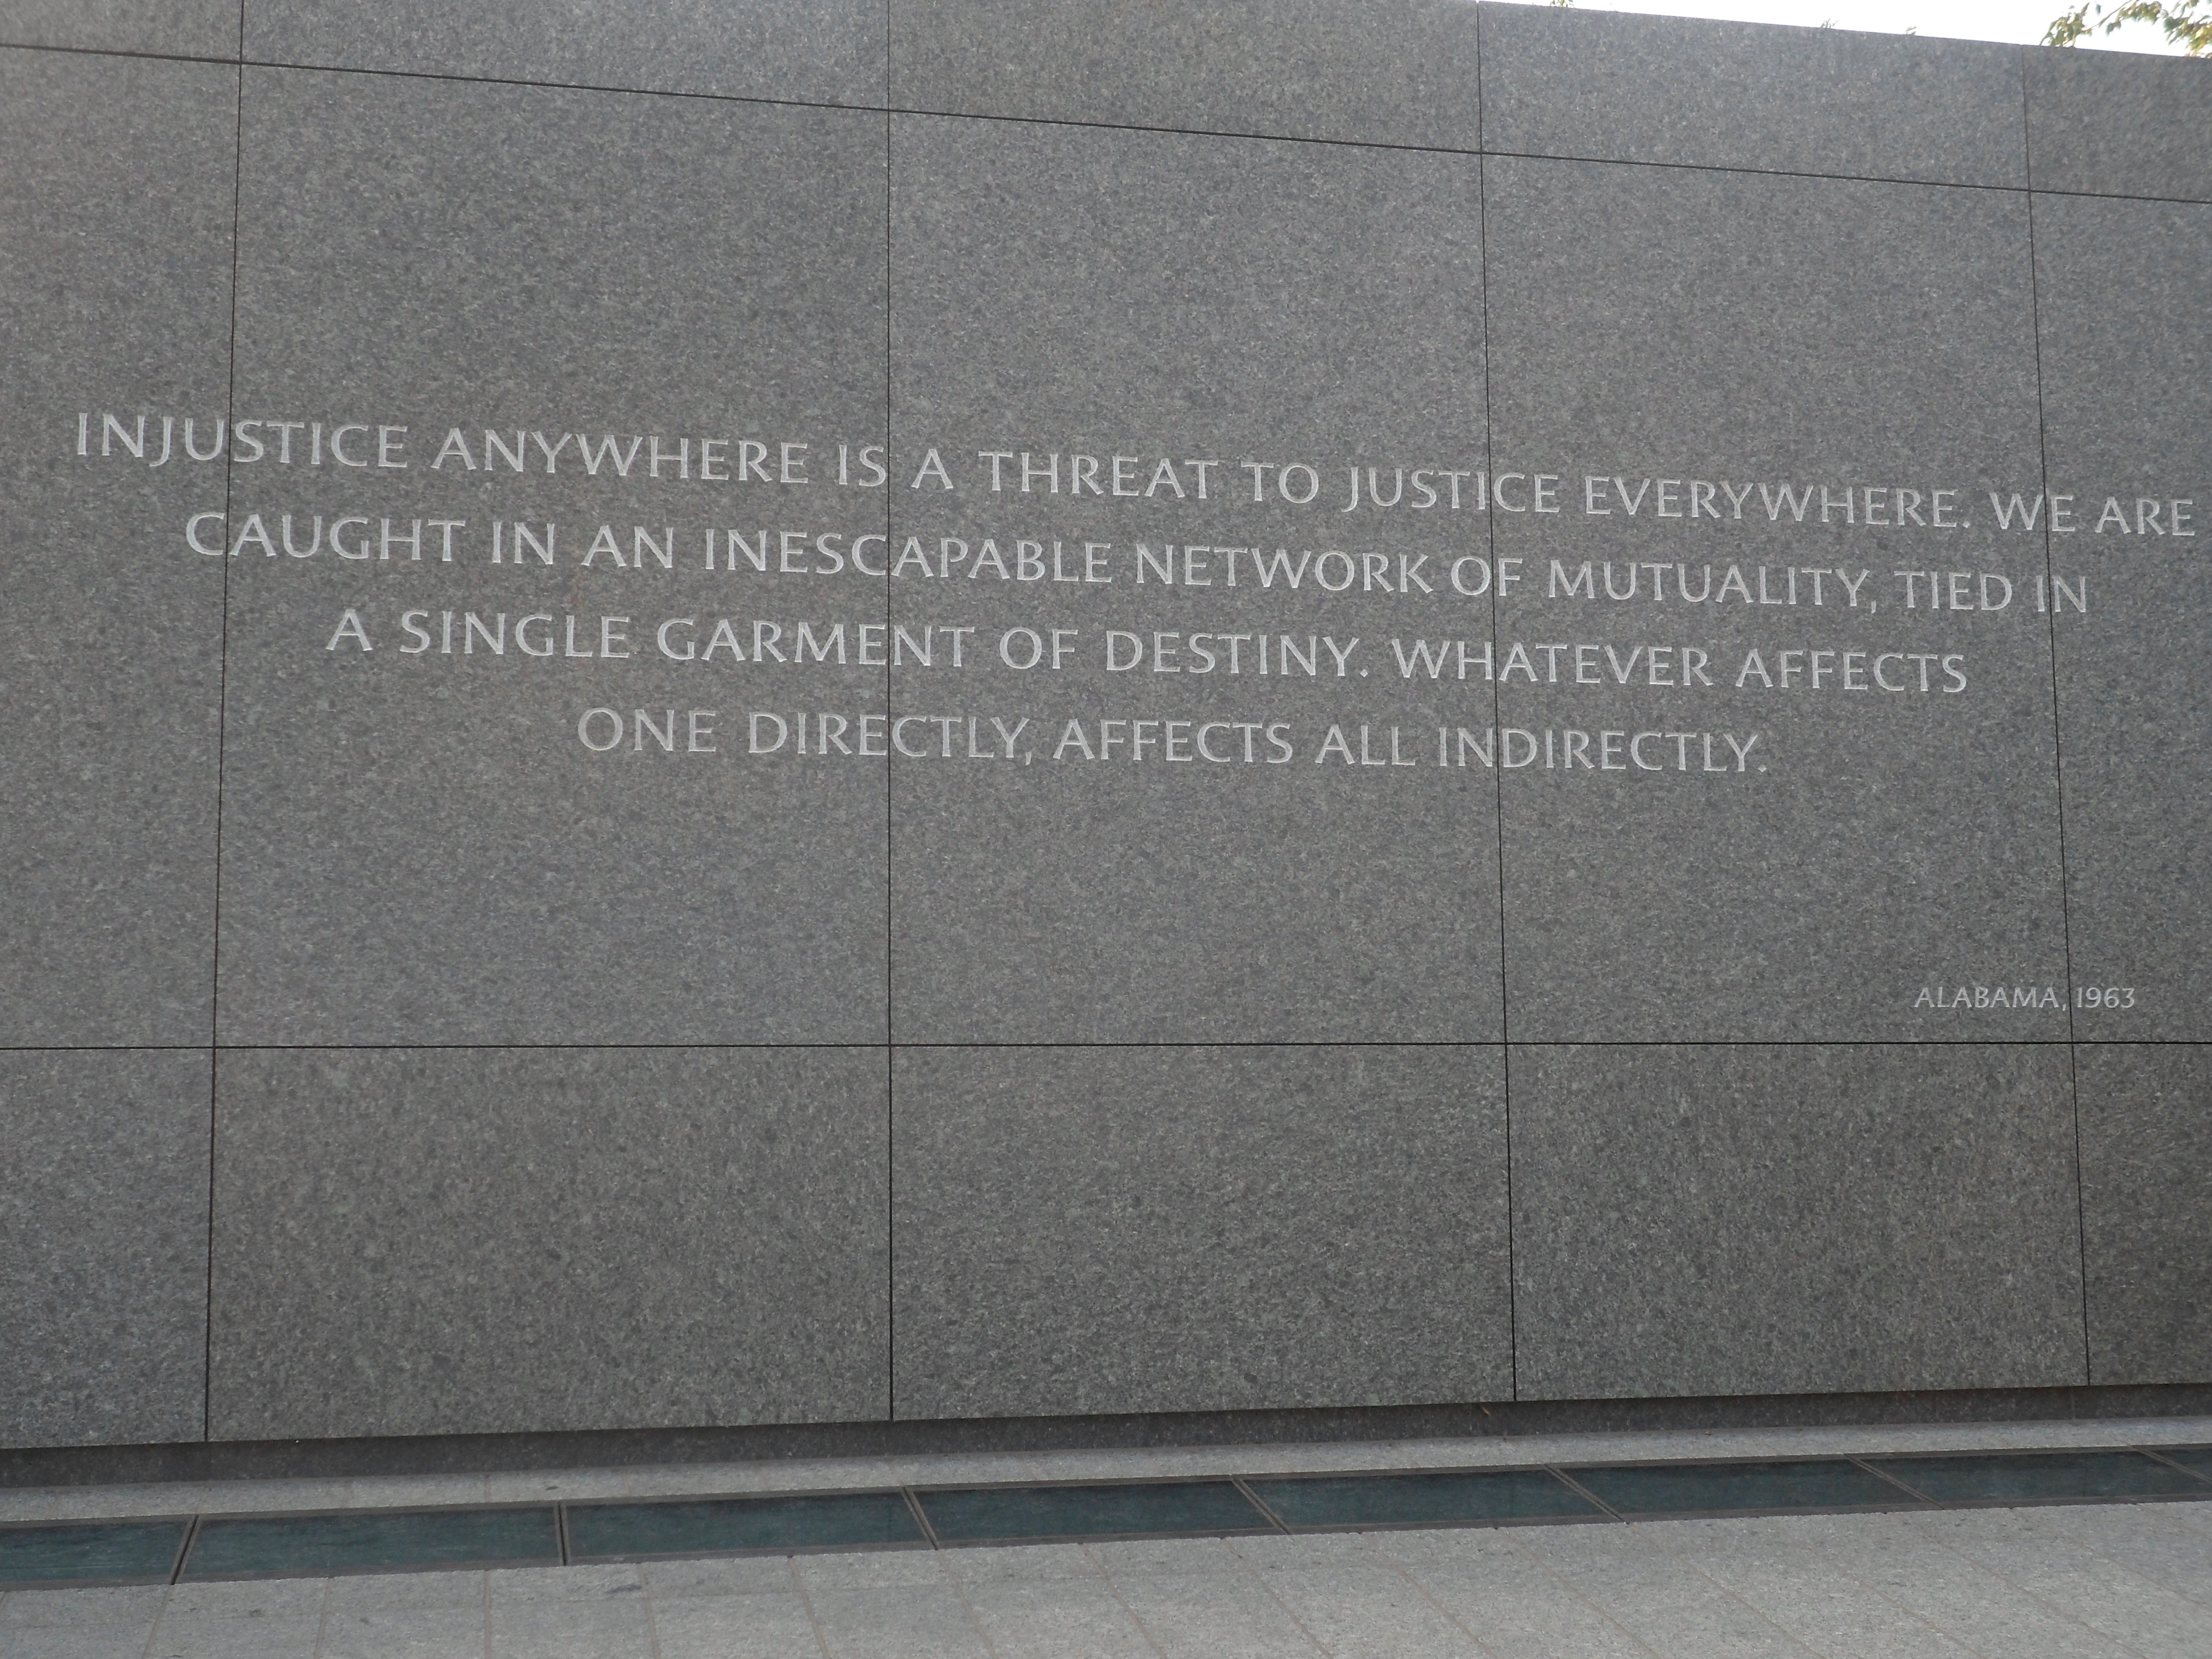 martin luther king jr quotes injustice anywhere is a threat to  volvo s40 omaha ne